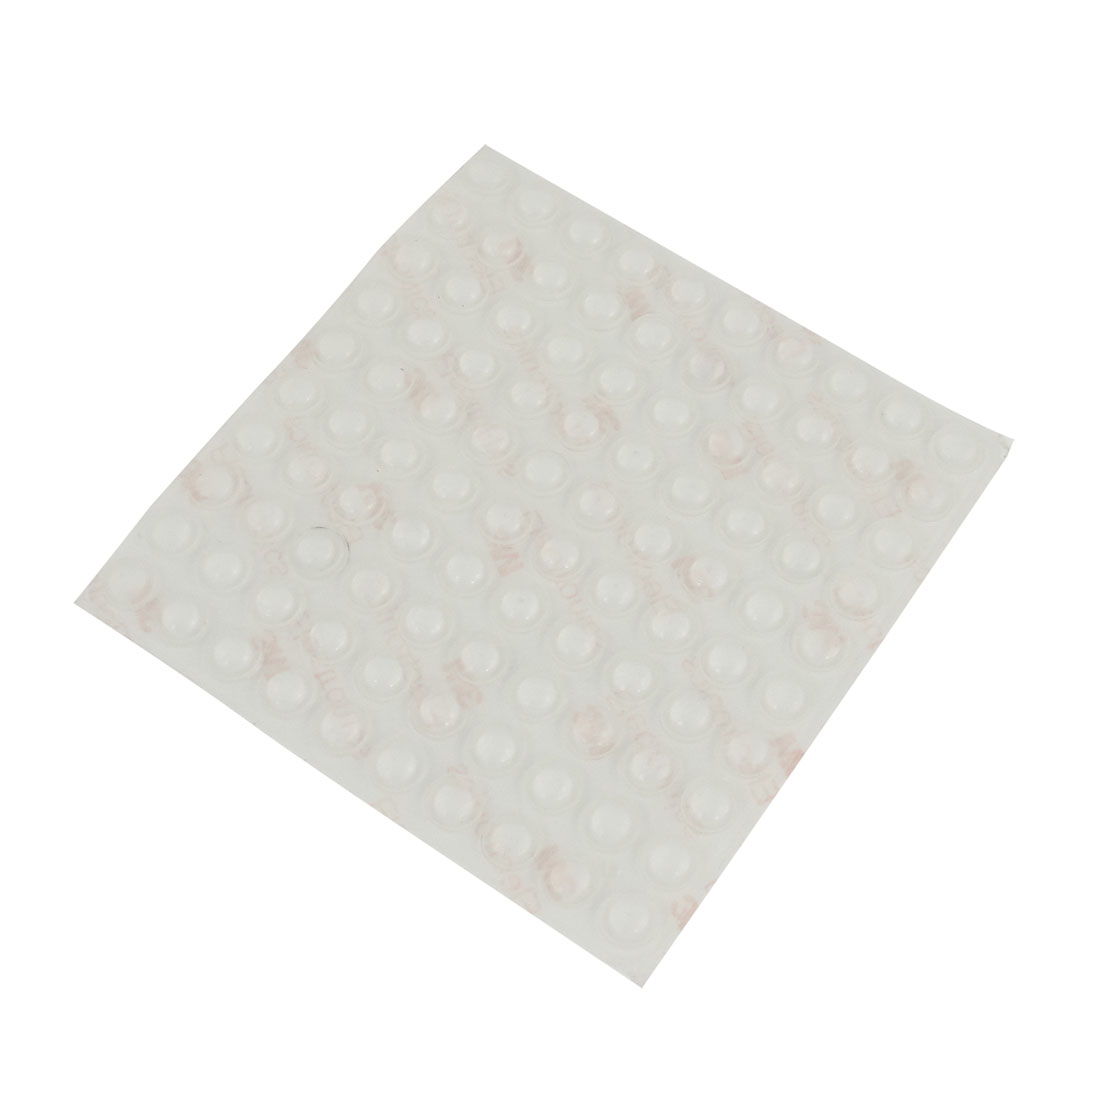 Home Table Floor Mat Cover Adhesive 8mm x 2.5mm Mini Rubber Pads Clear